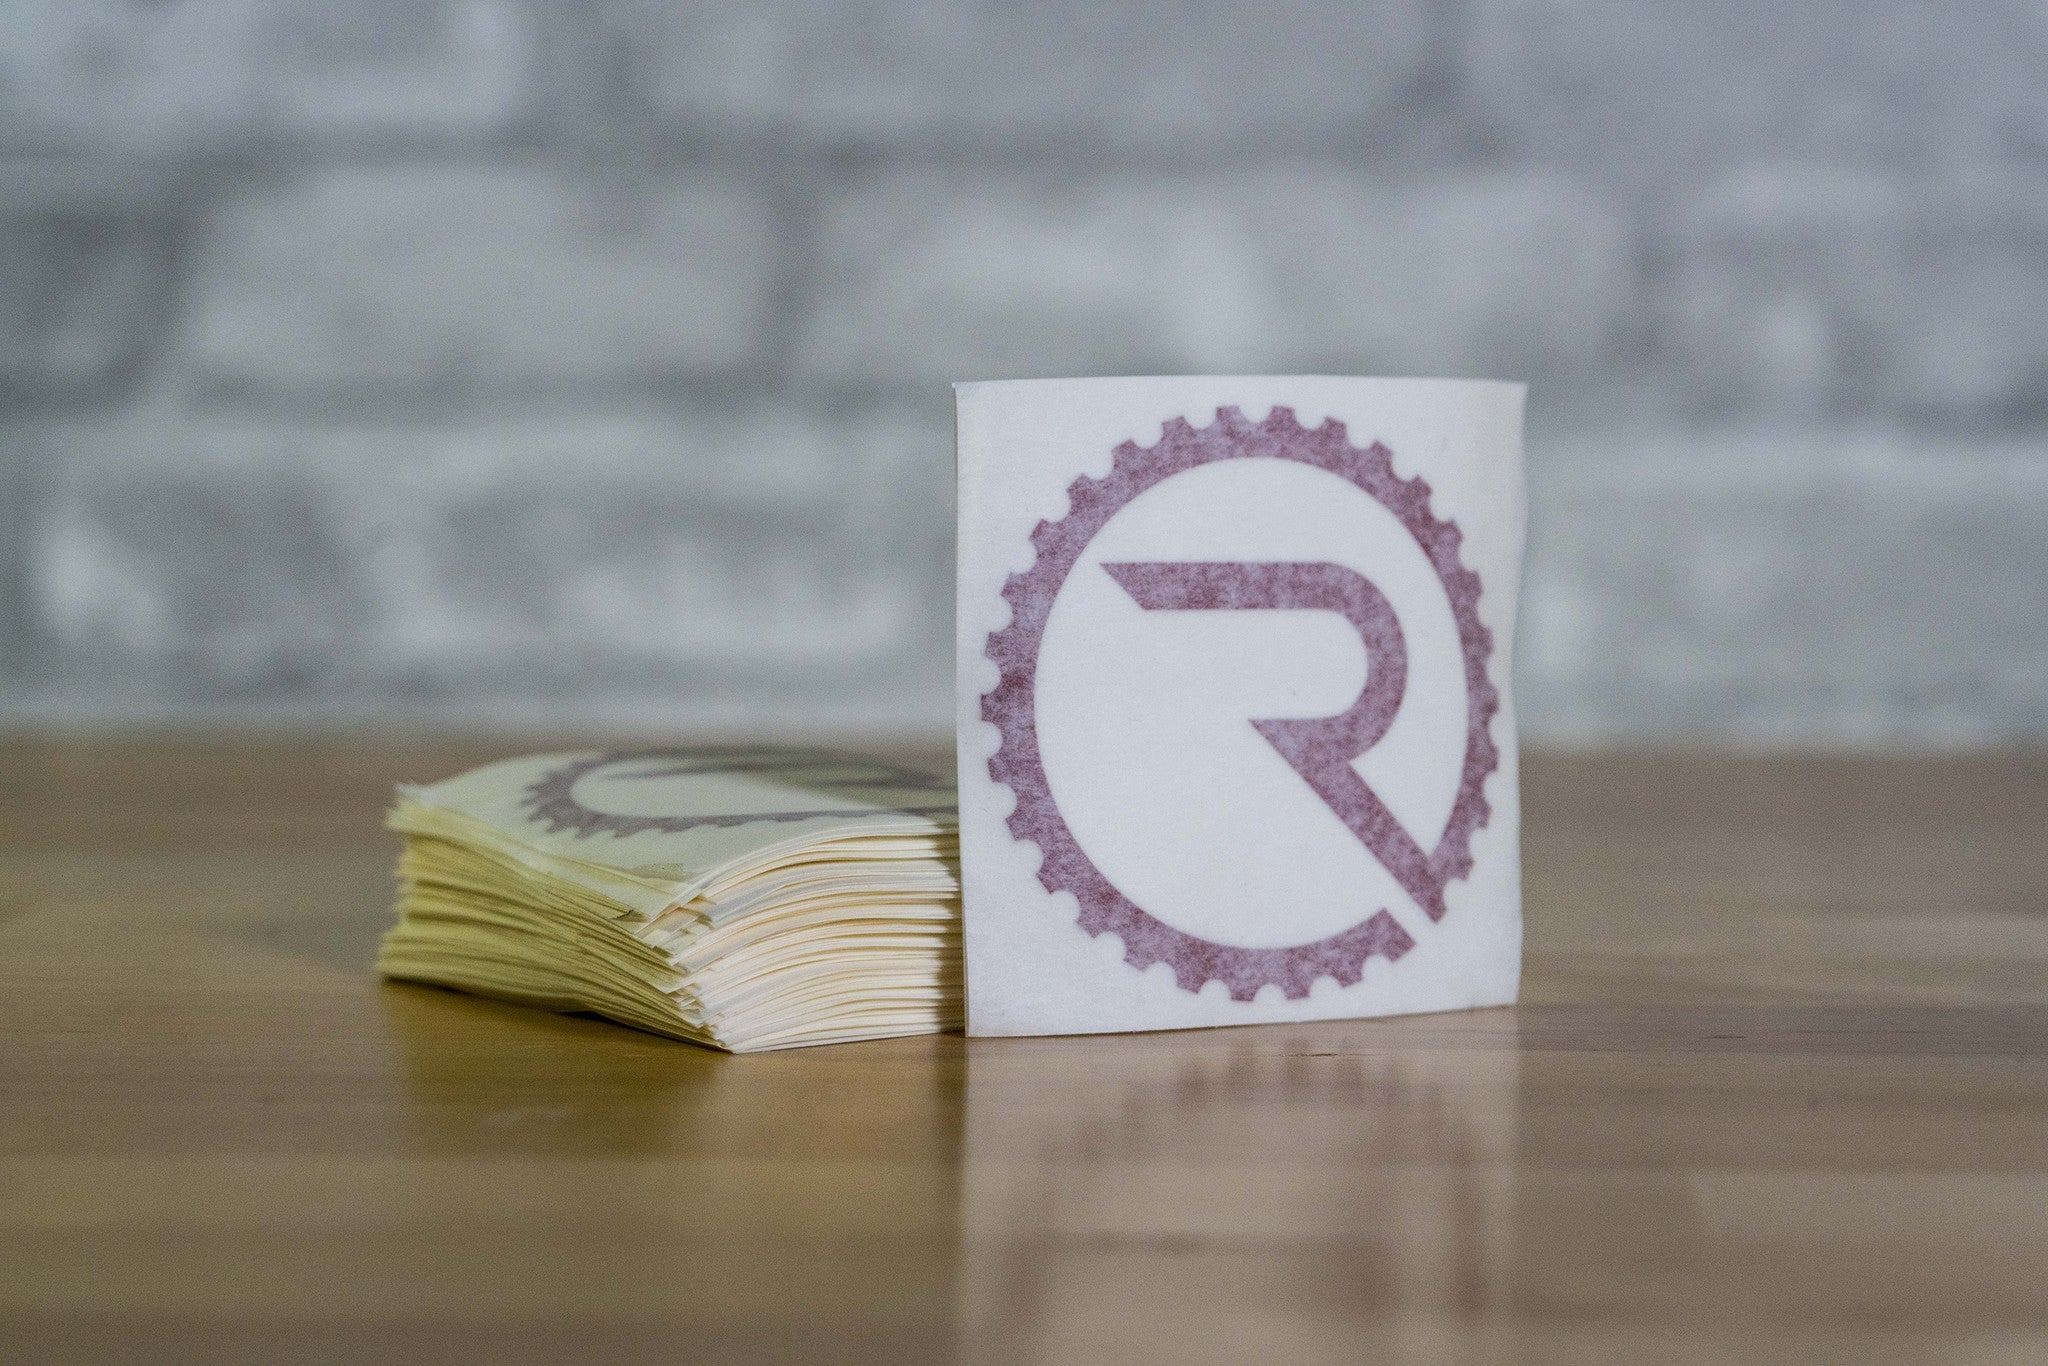 Geared R Decal - Reflective Red - Ride Apparel Co.